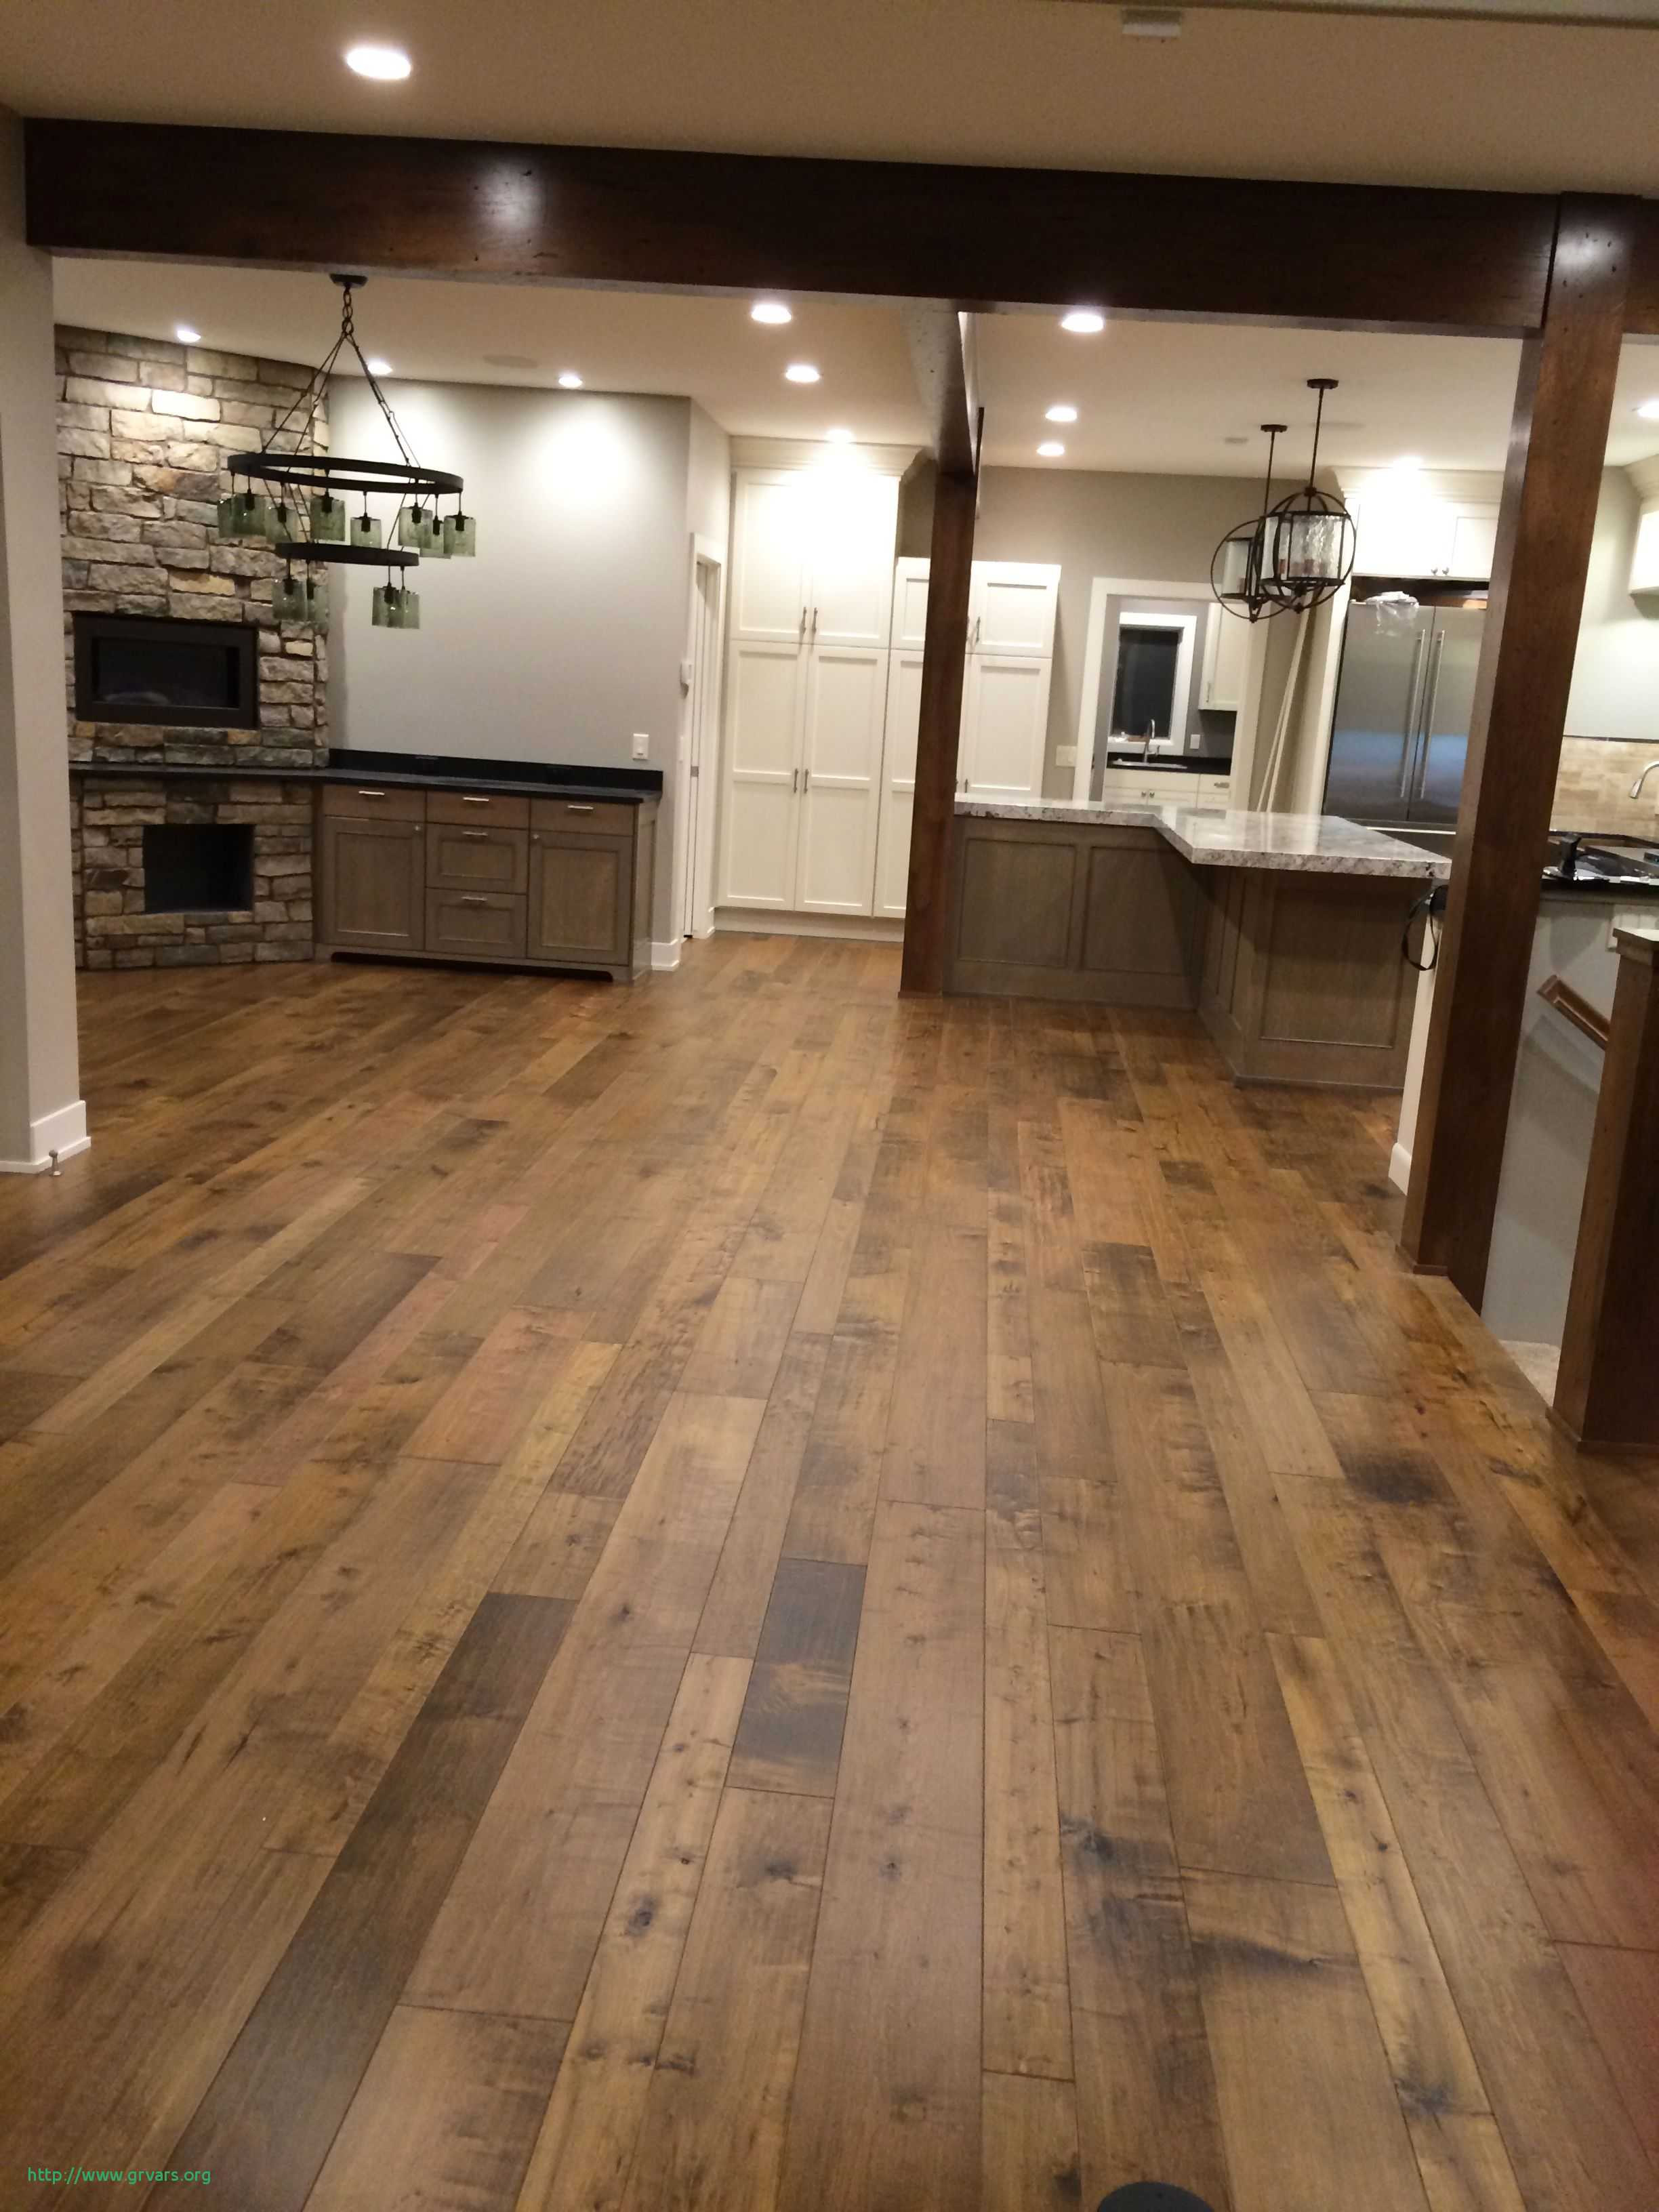 hardwood flooring wholesale georgia of 21 nouveau how much is laminate flooring installed ideas blog inside how much is laminate flooring installed beau monterey hardwood collection rooms and spaces